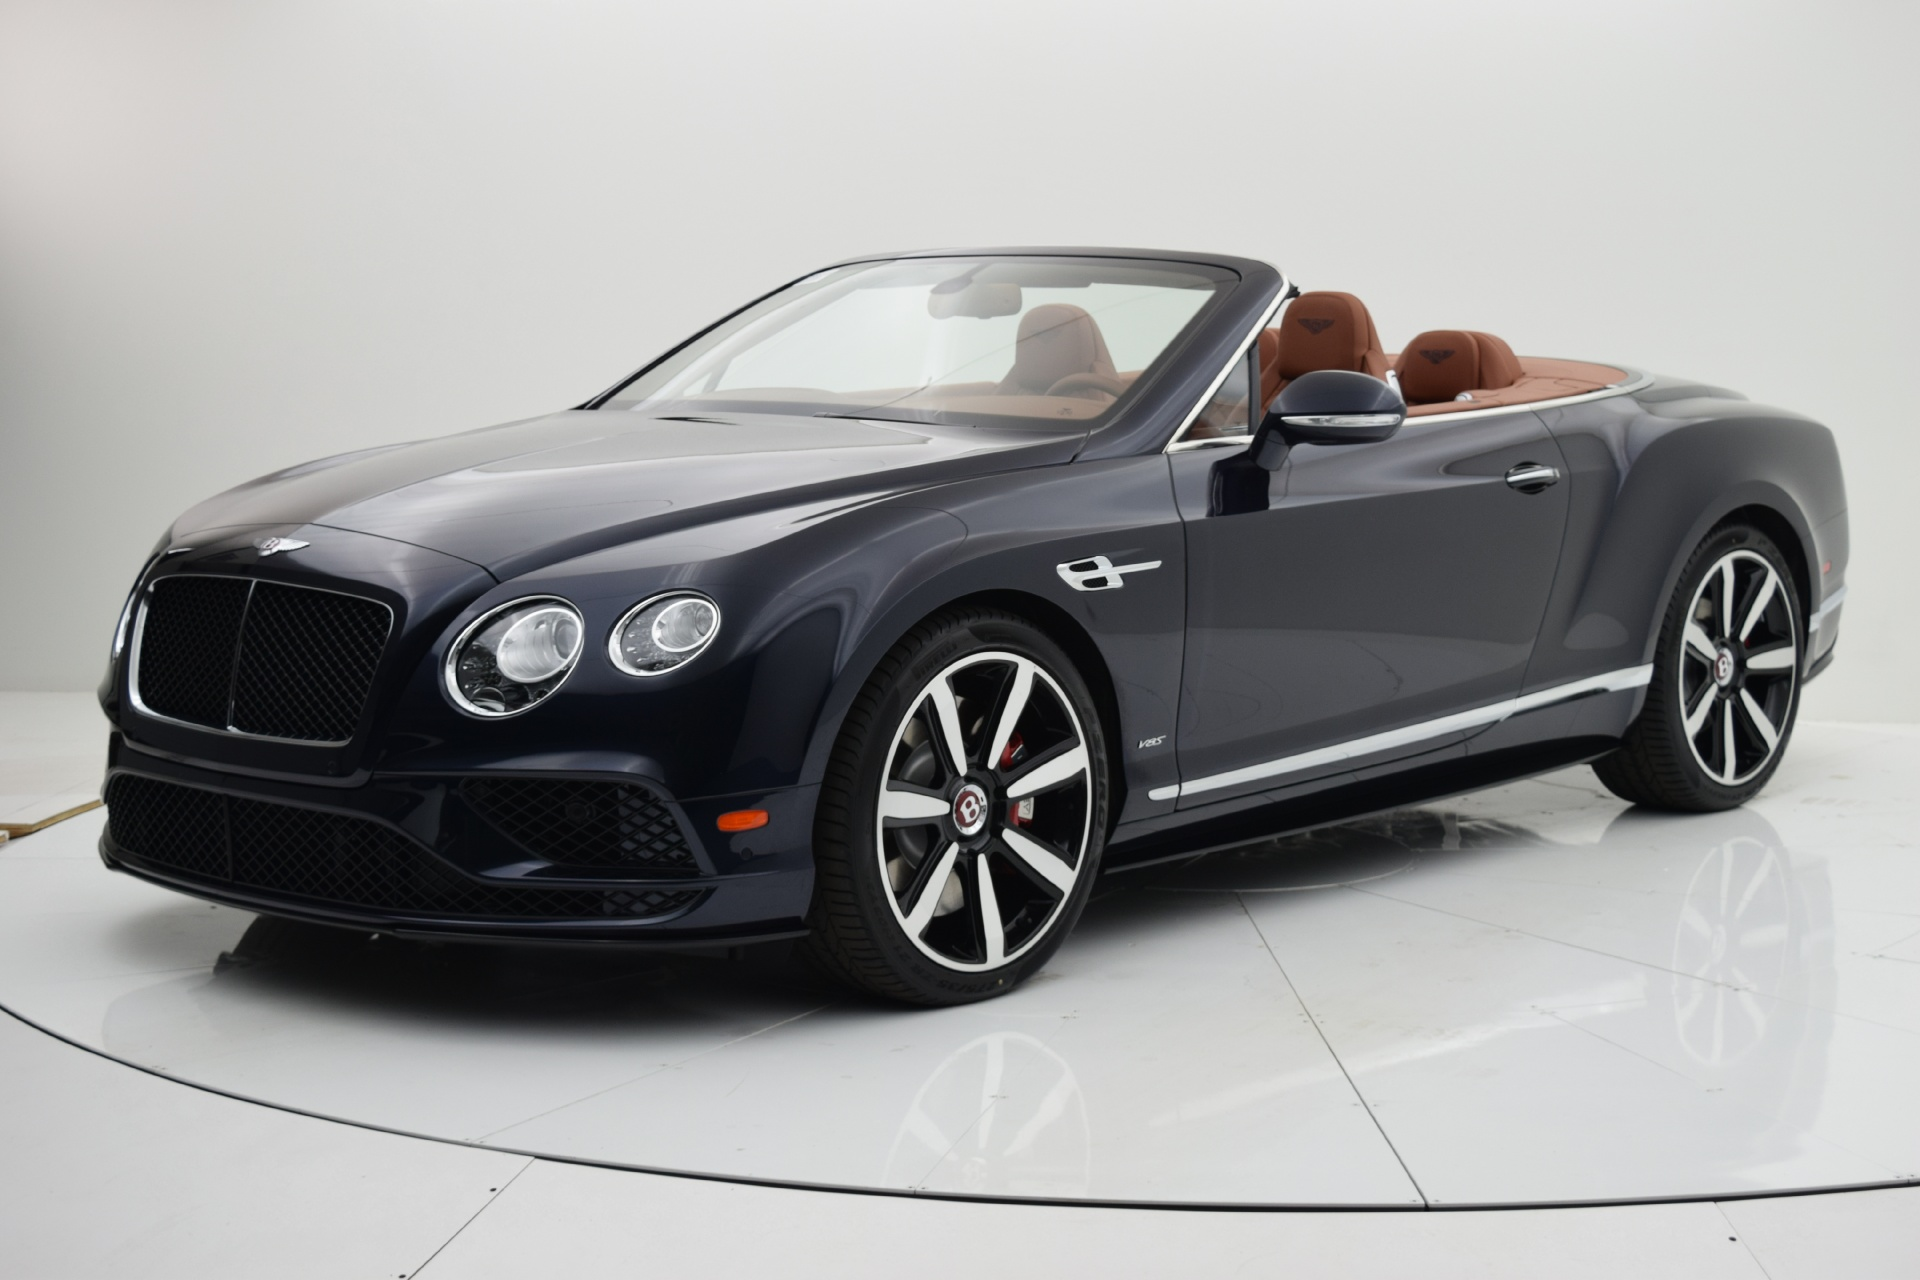 Used 2016 Bentley Continental GT V8 S Convertible for sale $152,880 at F.C. Kerbeck Aston Martin in Palmyra NJ 08065 2